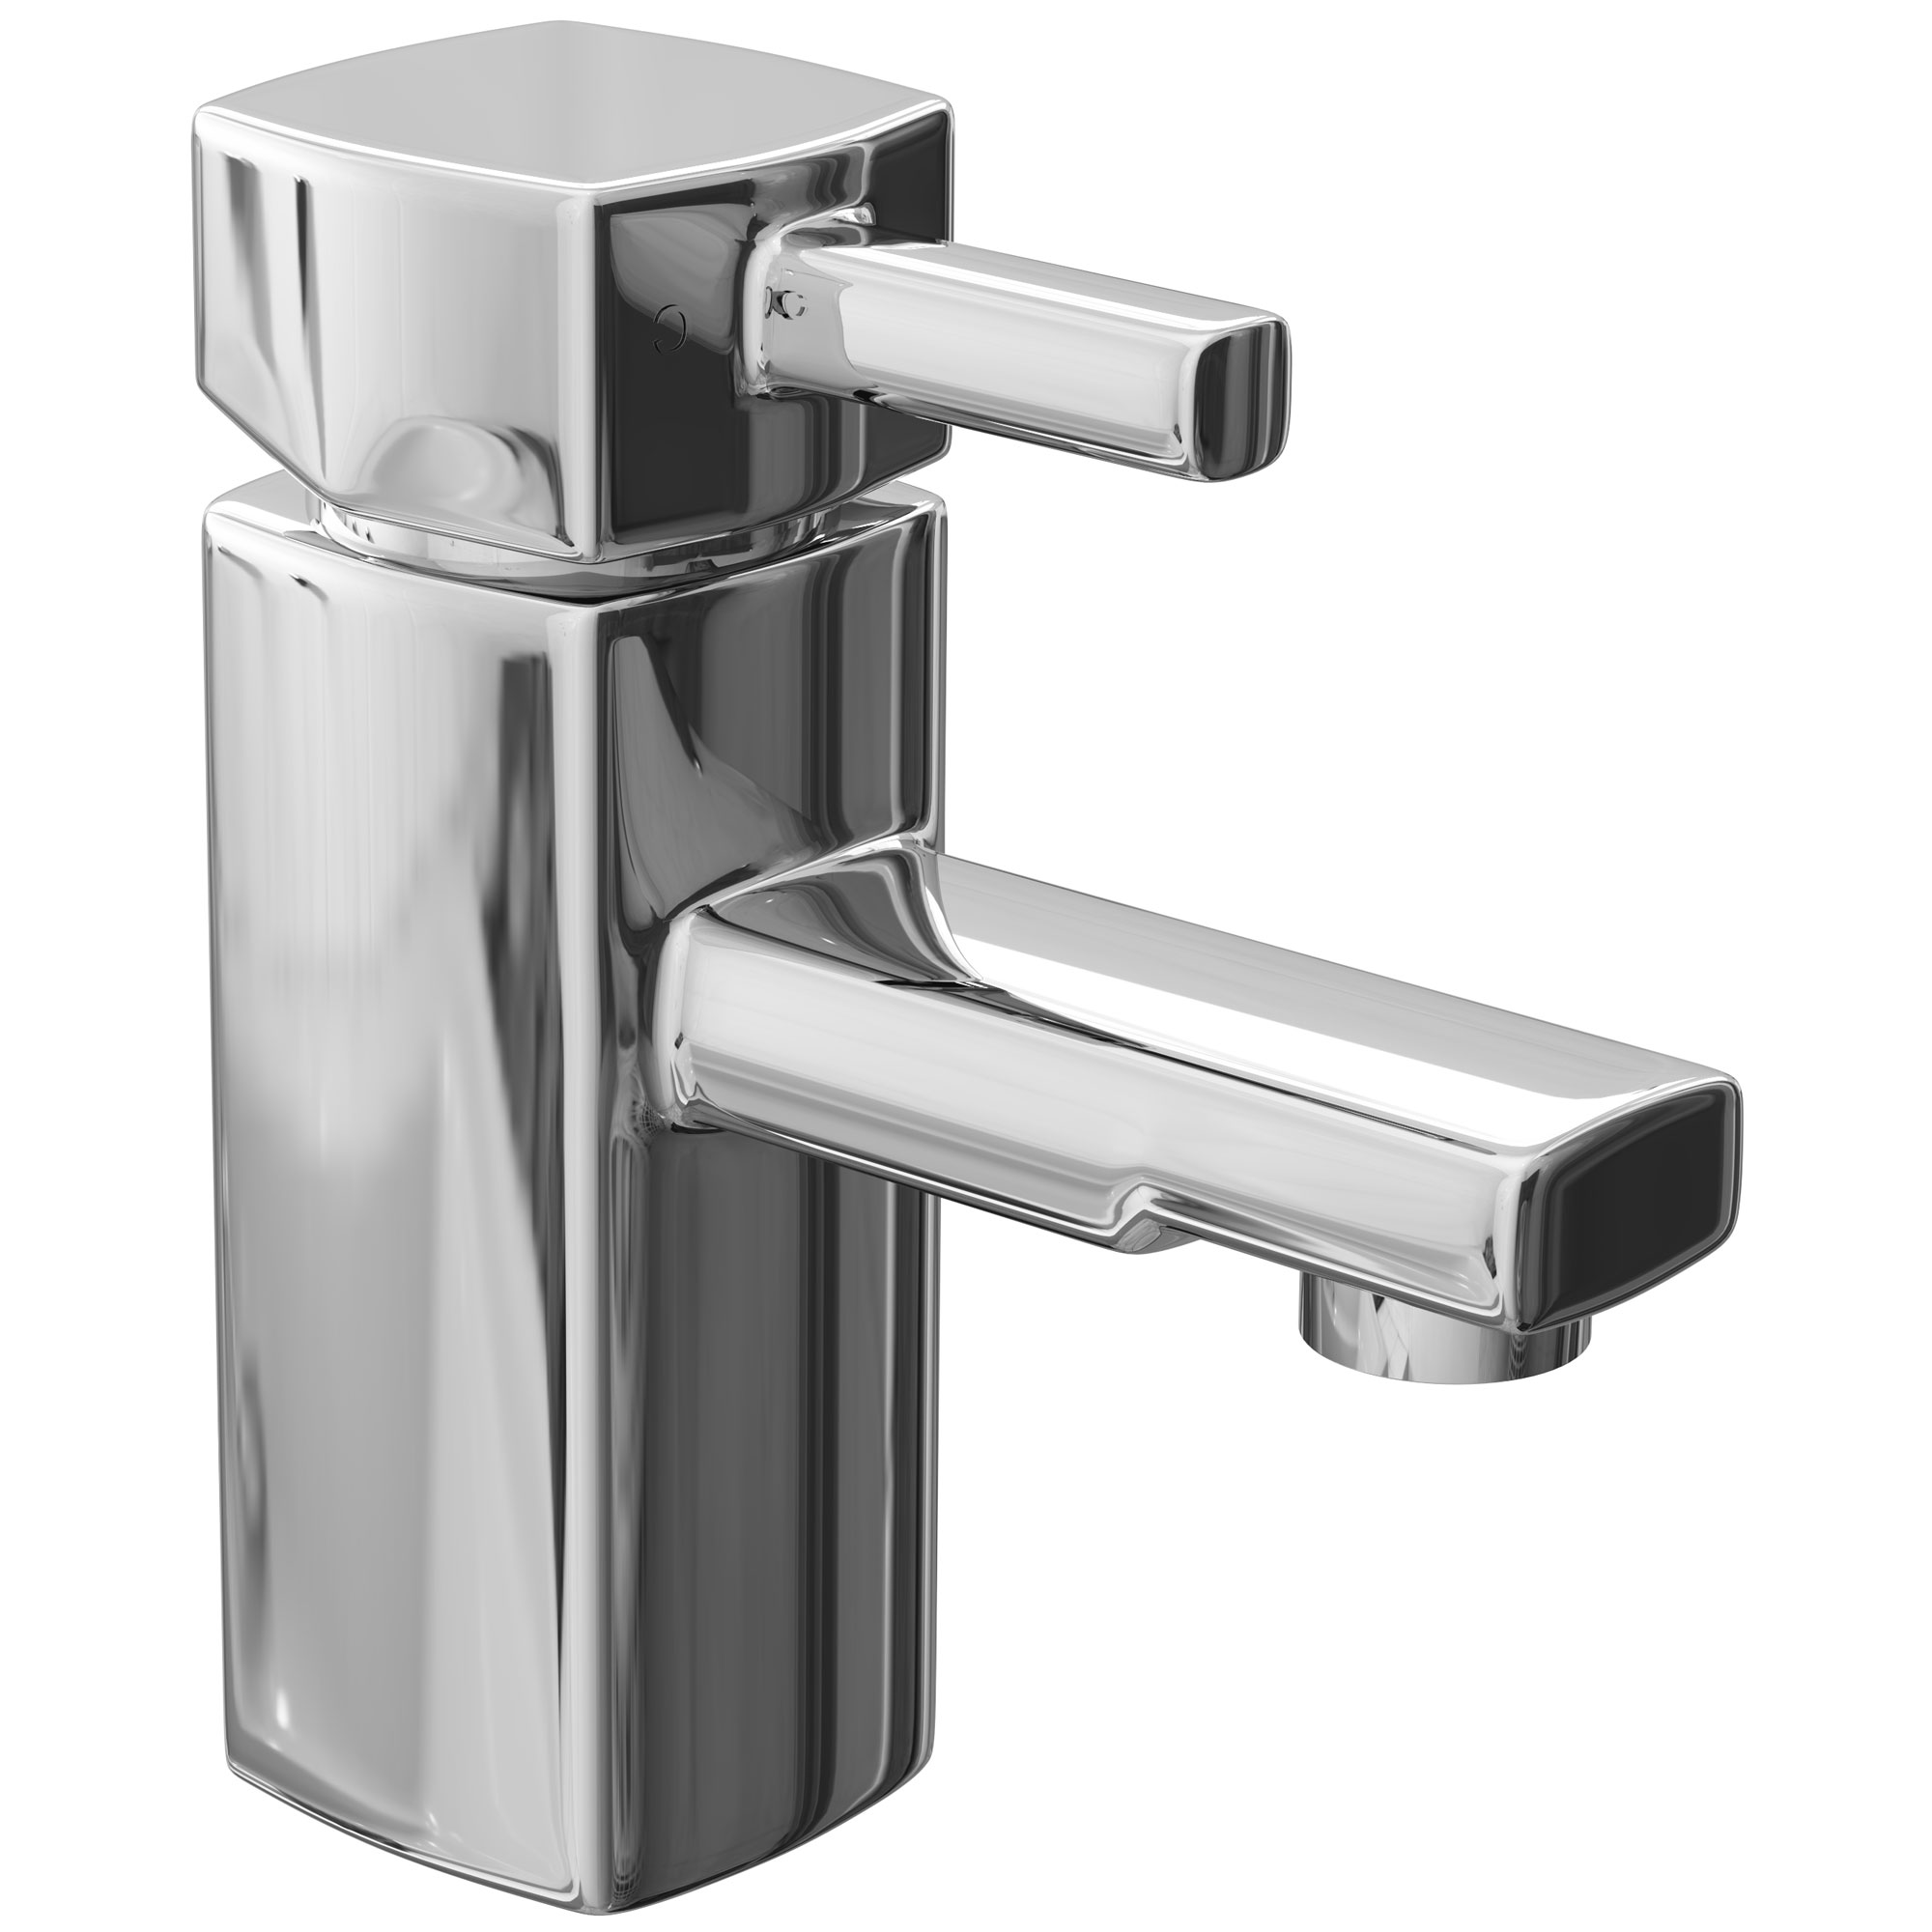 Cali Nero Mono Basin Mixer Tap Deck Mounted with Click Clack Waste - Chrome-1